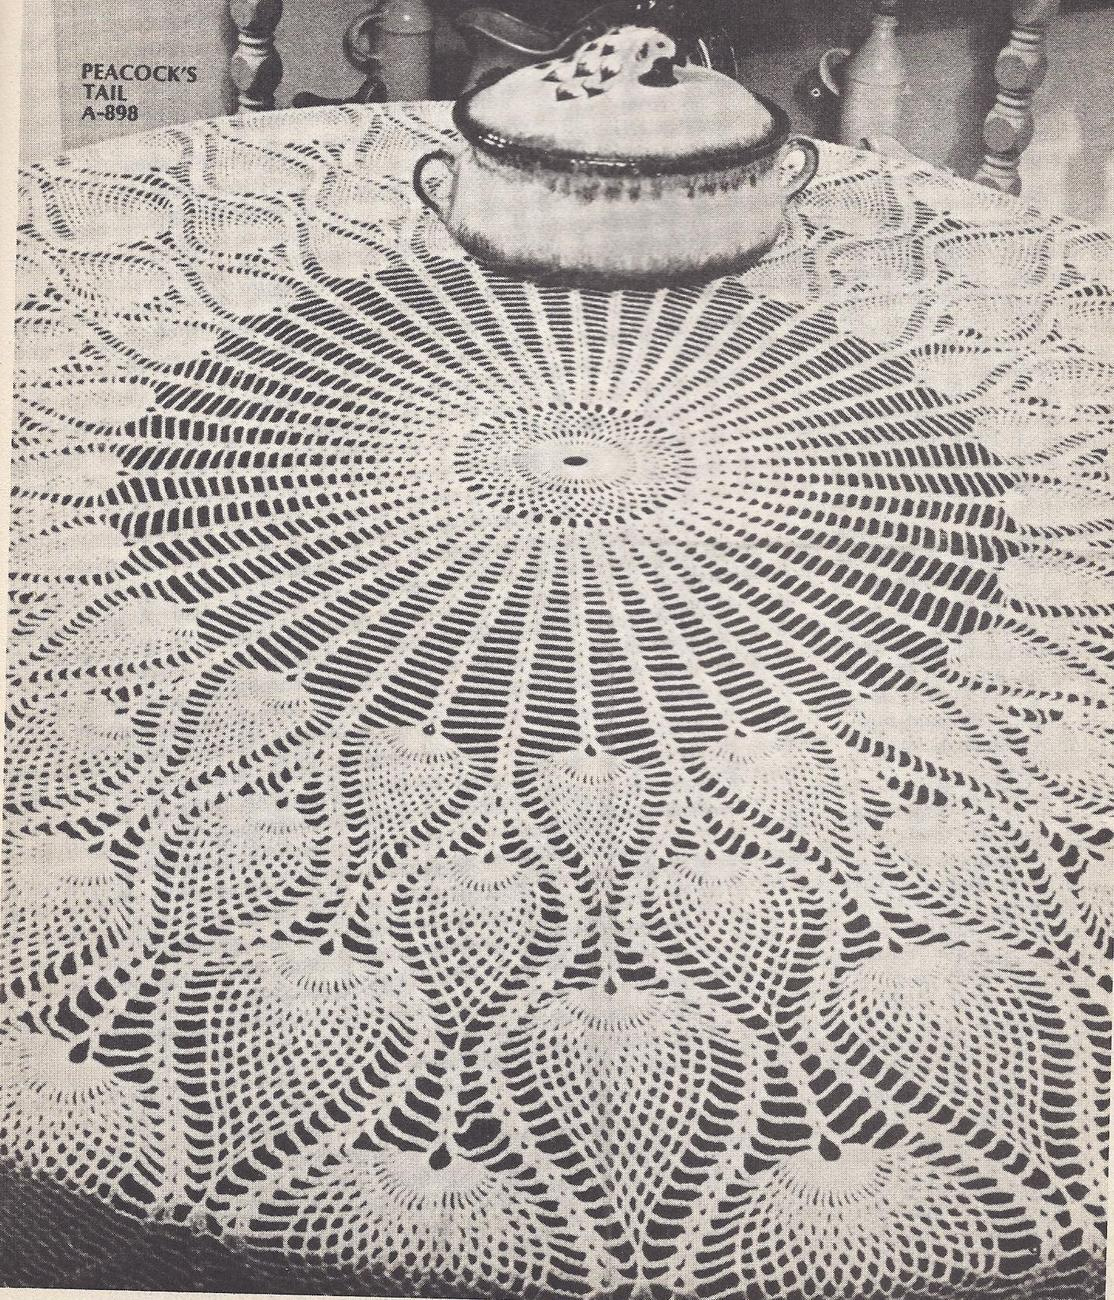 Crochet patterns round tablecloth pakbit for rarevhtfpeacocks tail round tablecloth crochet pattern bankloansurffo Choice Image